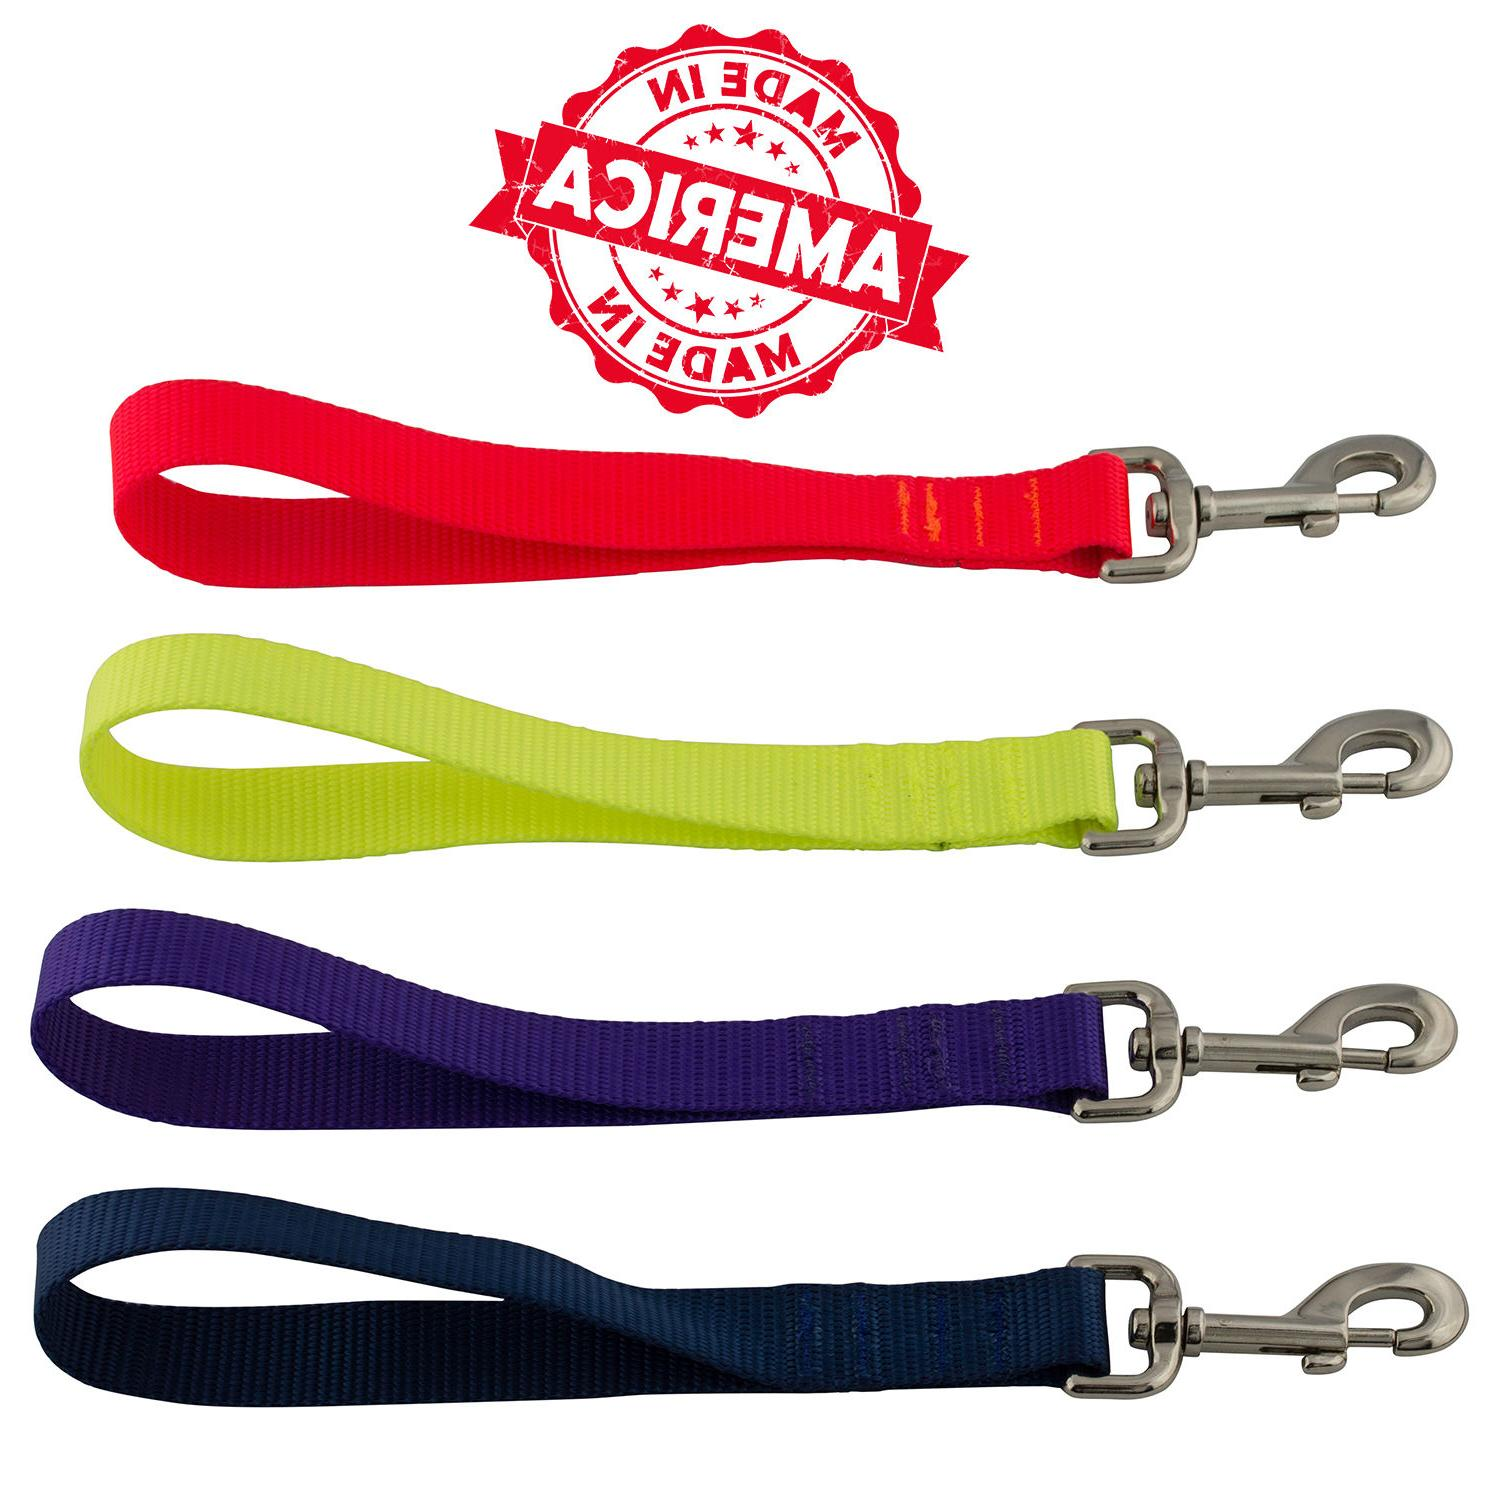 "Nylon Dog Leash Made & 24"" Black & 25 Colors"